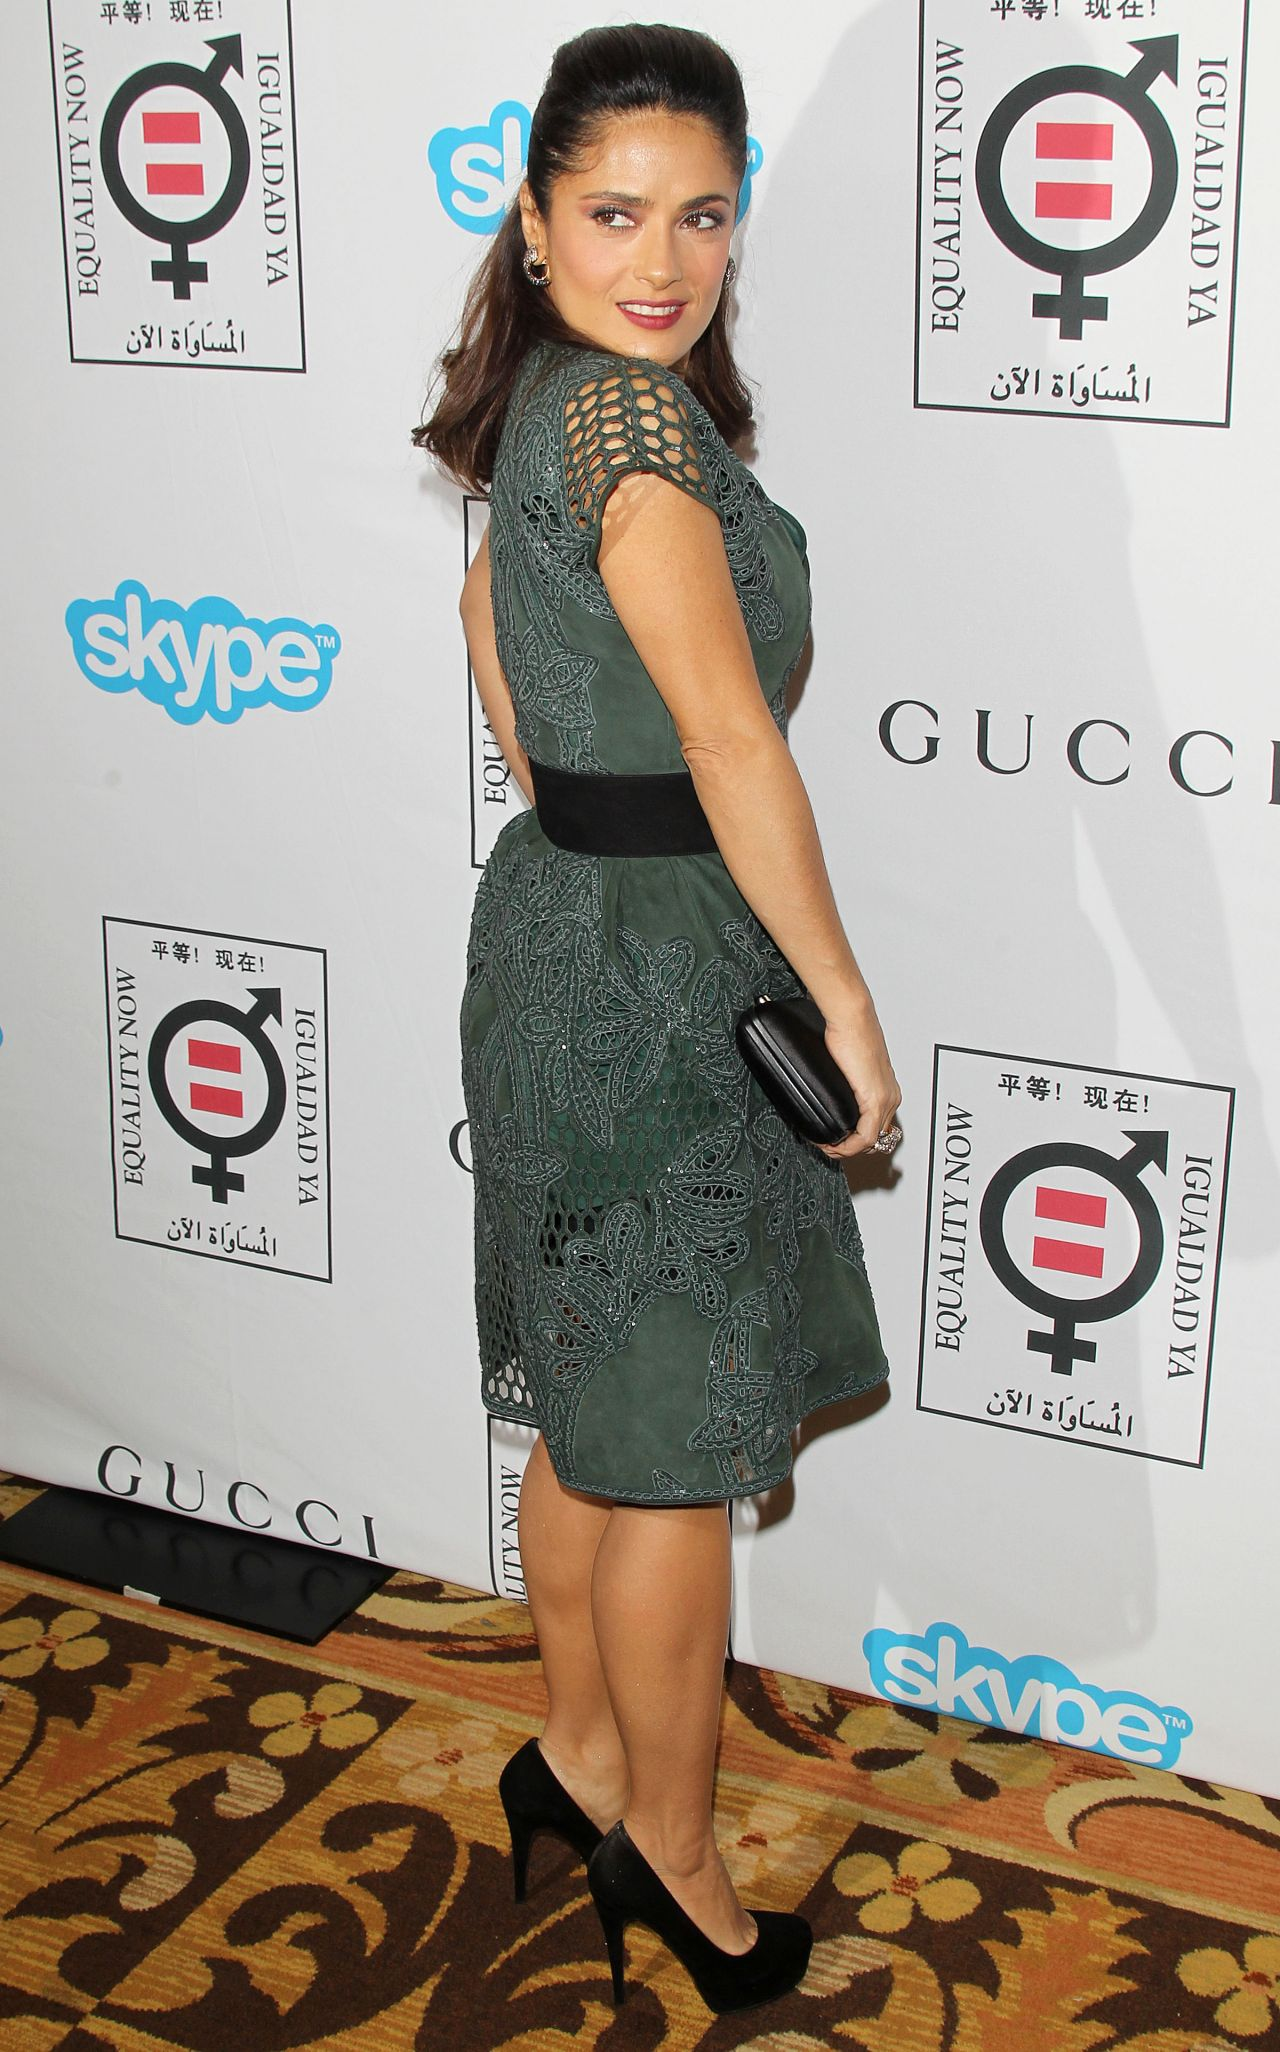 Salma Hayek - Equality Nows Make Equality Reality Event -6148